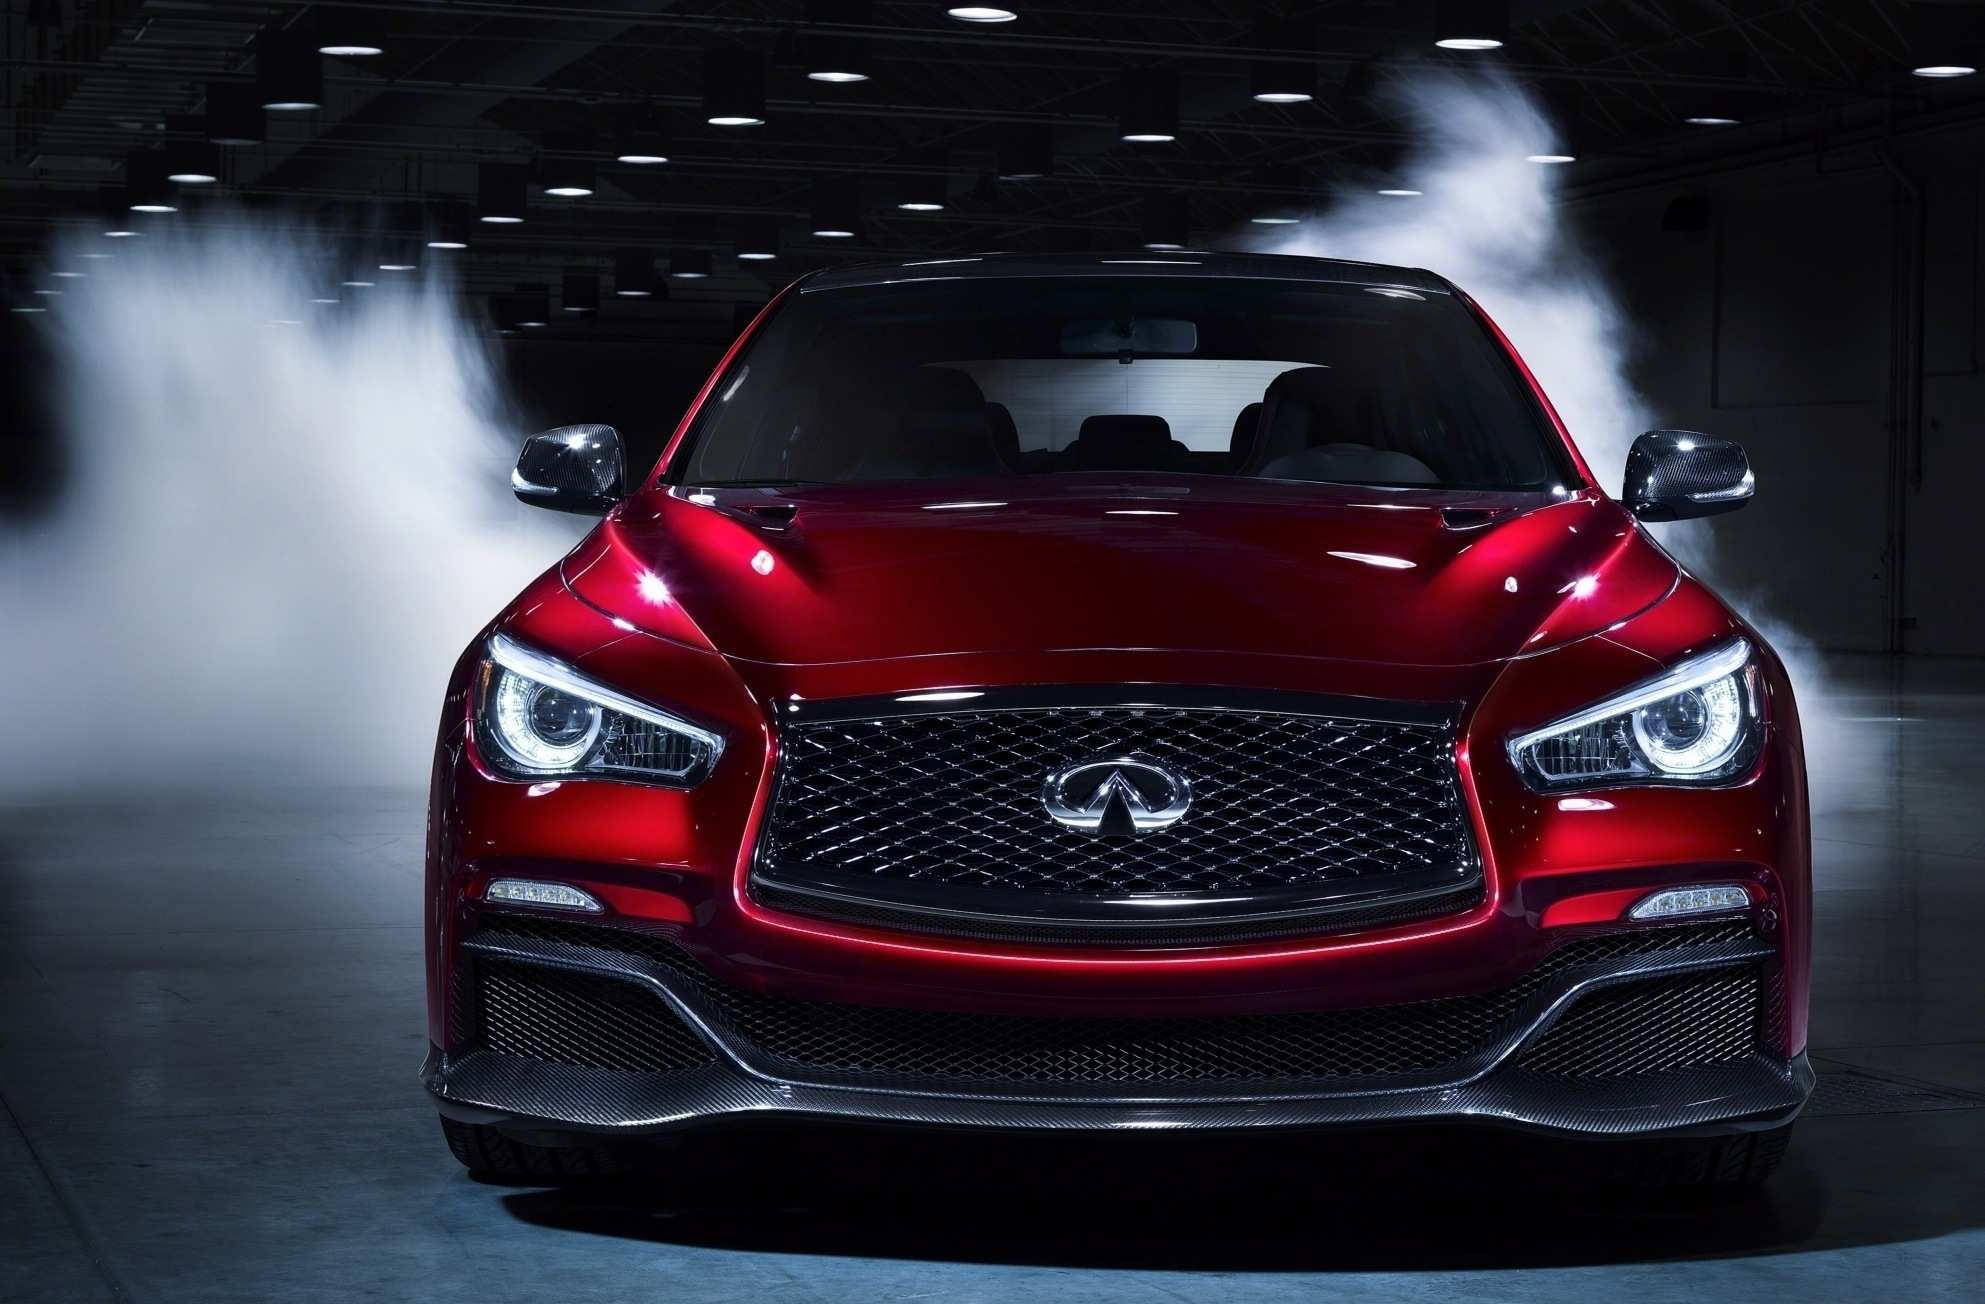 45 New 2020 Infiniti Q50 Price And Release Date